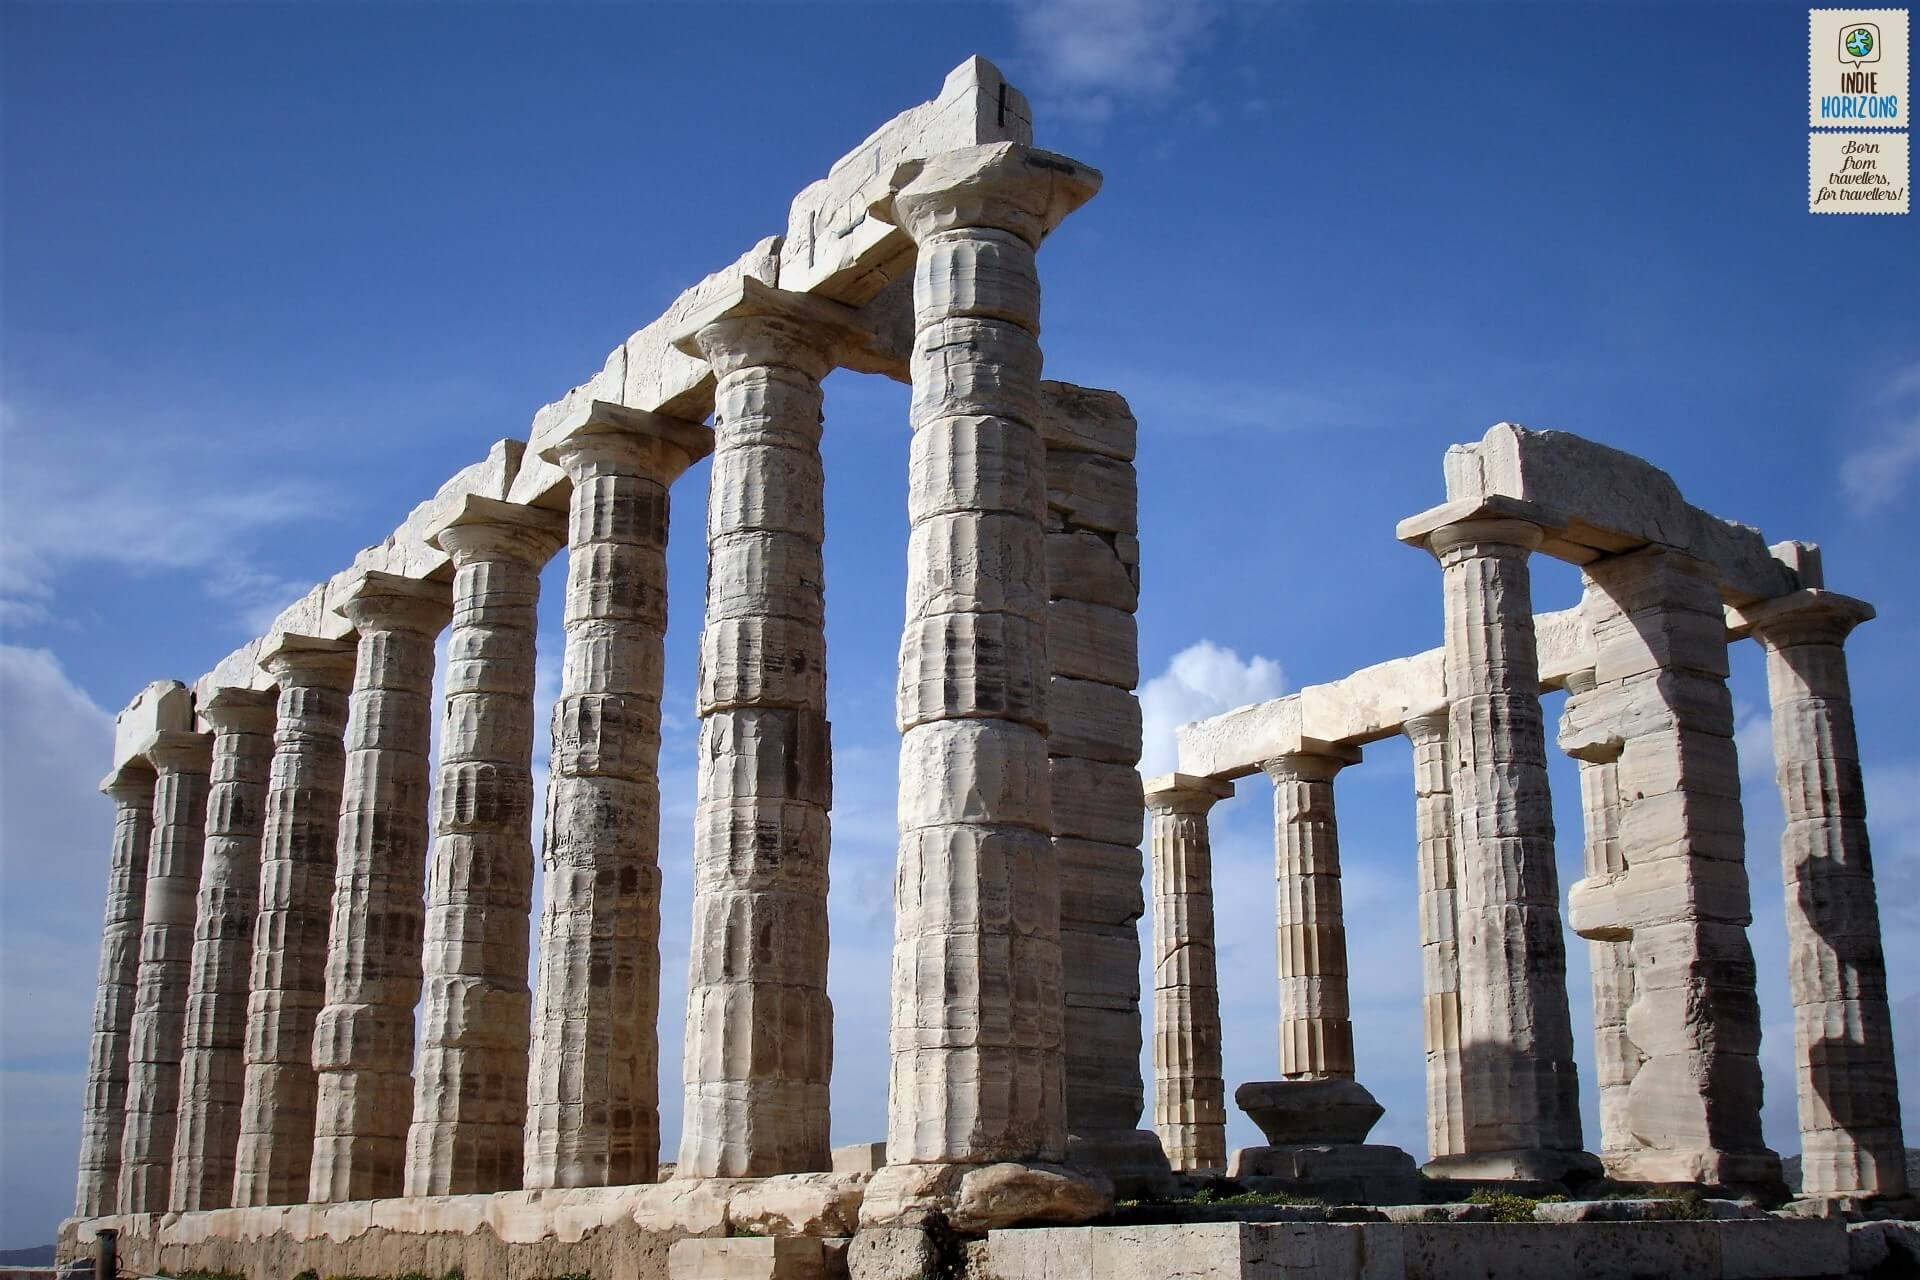 The fabled Temple of Poseidon in Sounion.